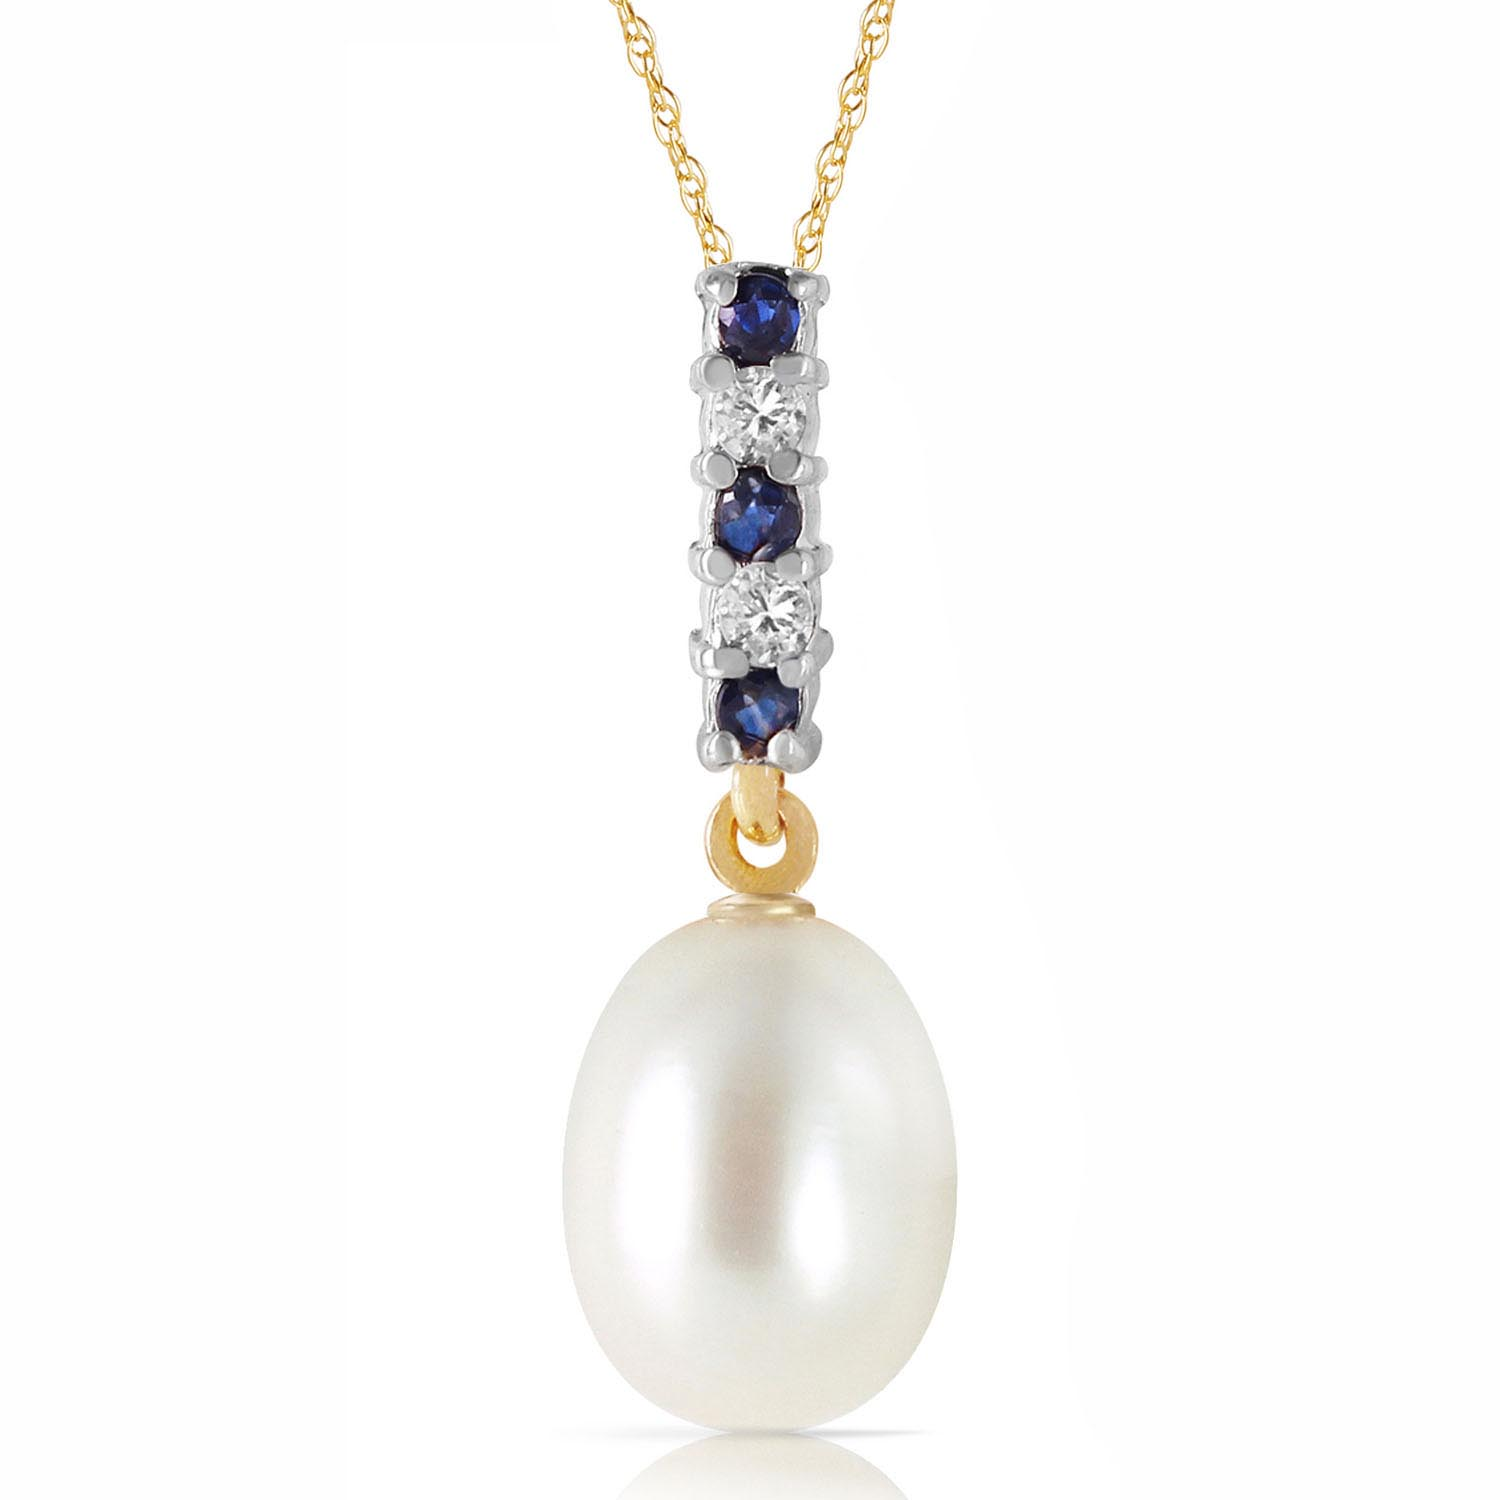 Pearl, Sapphire and Diamond Pendant Necklace 4.12ctw in 9ct Gold